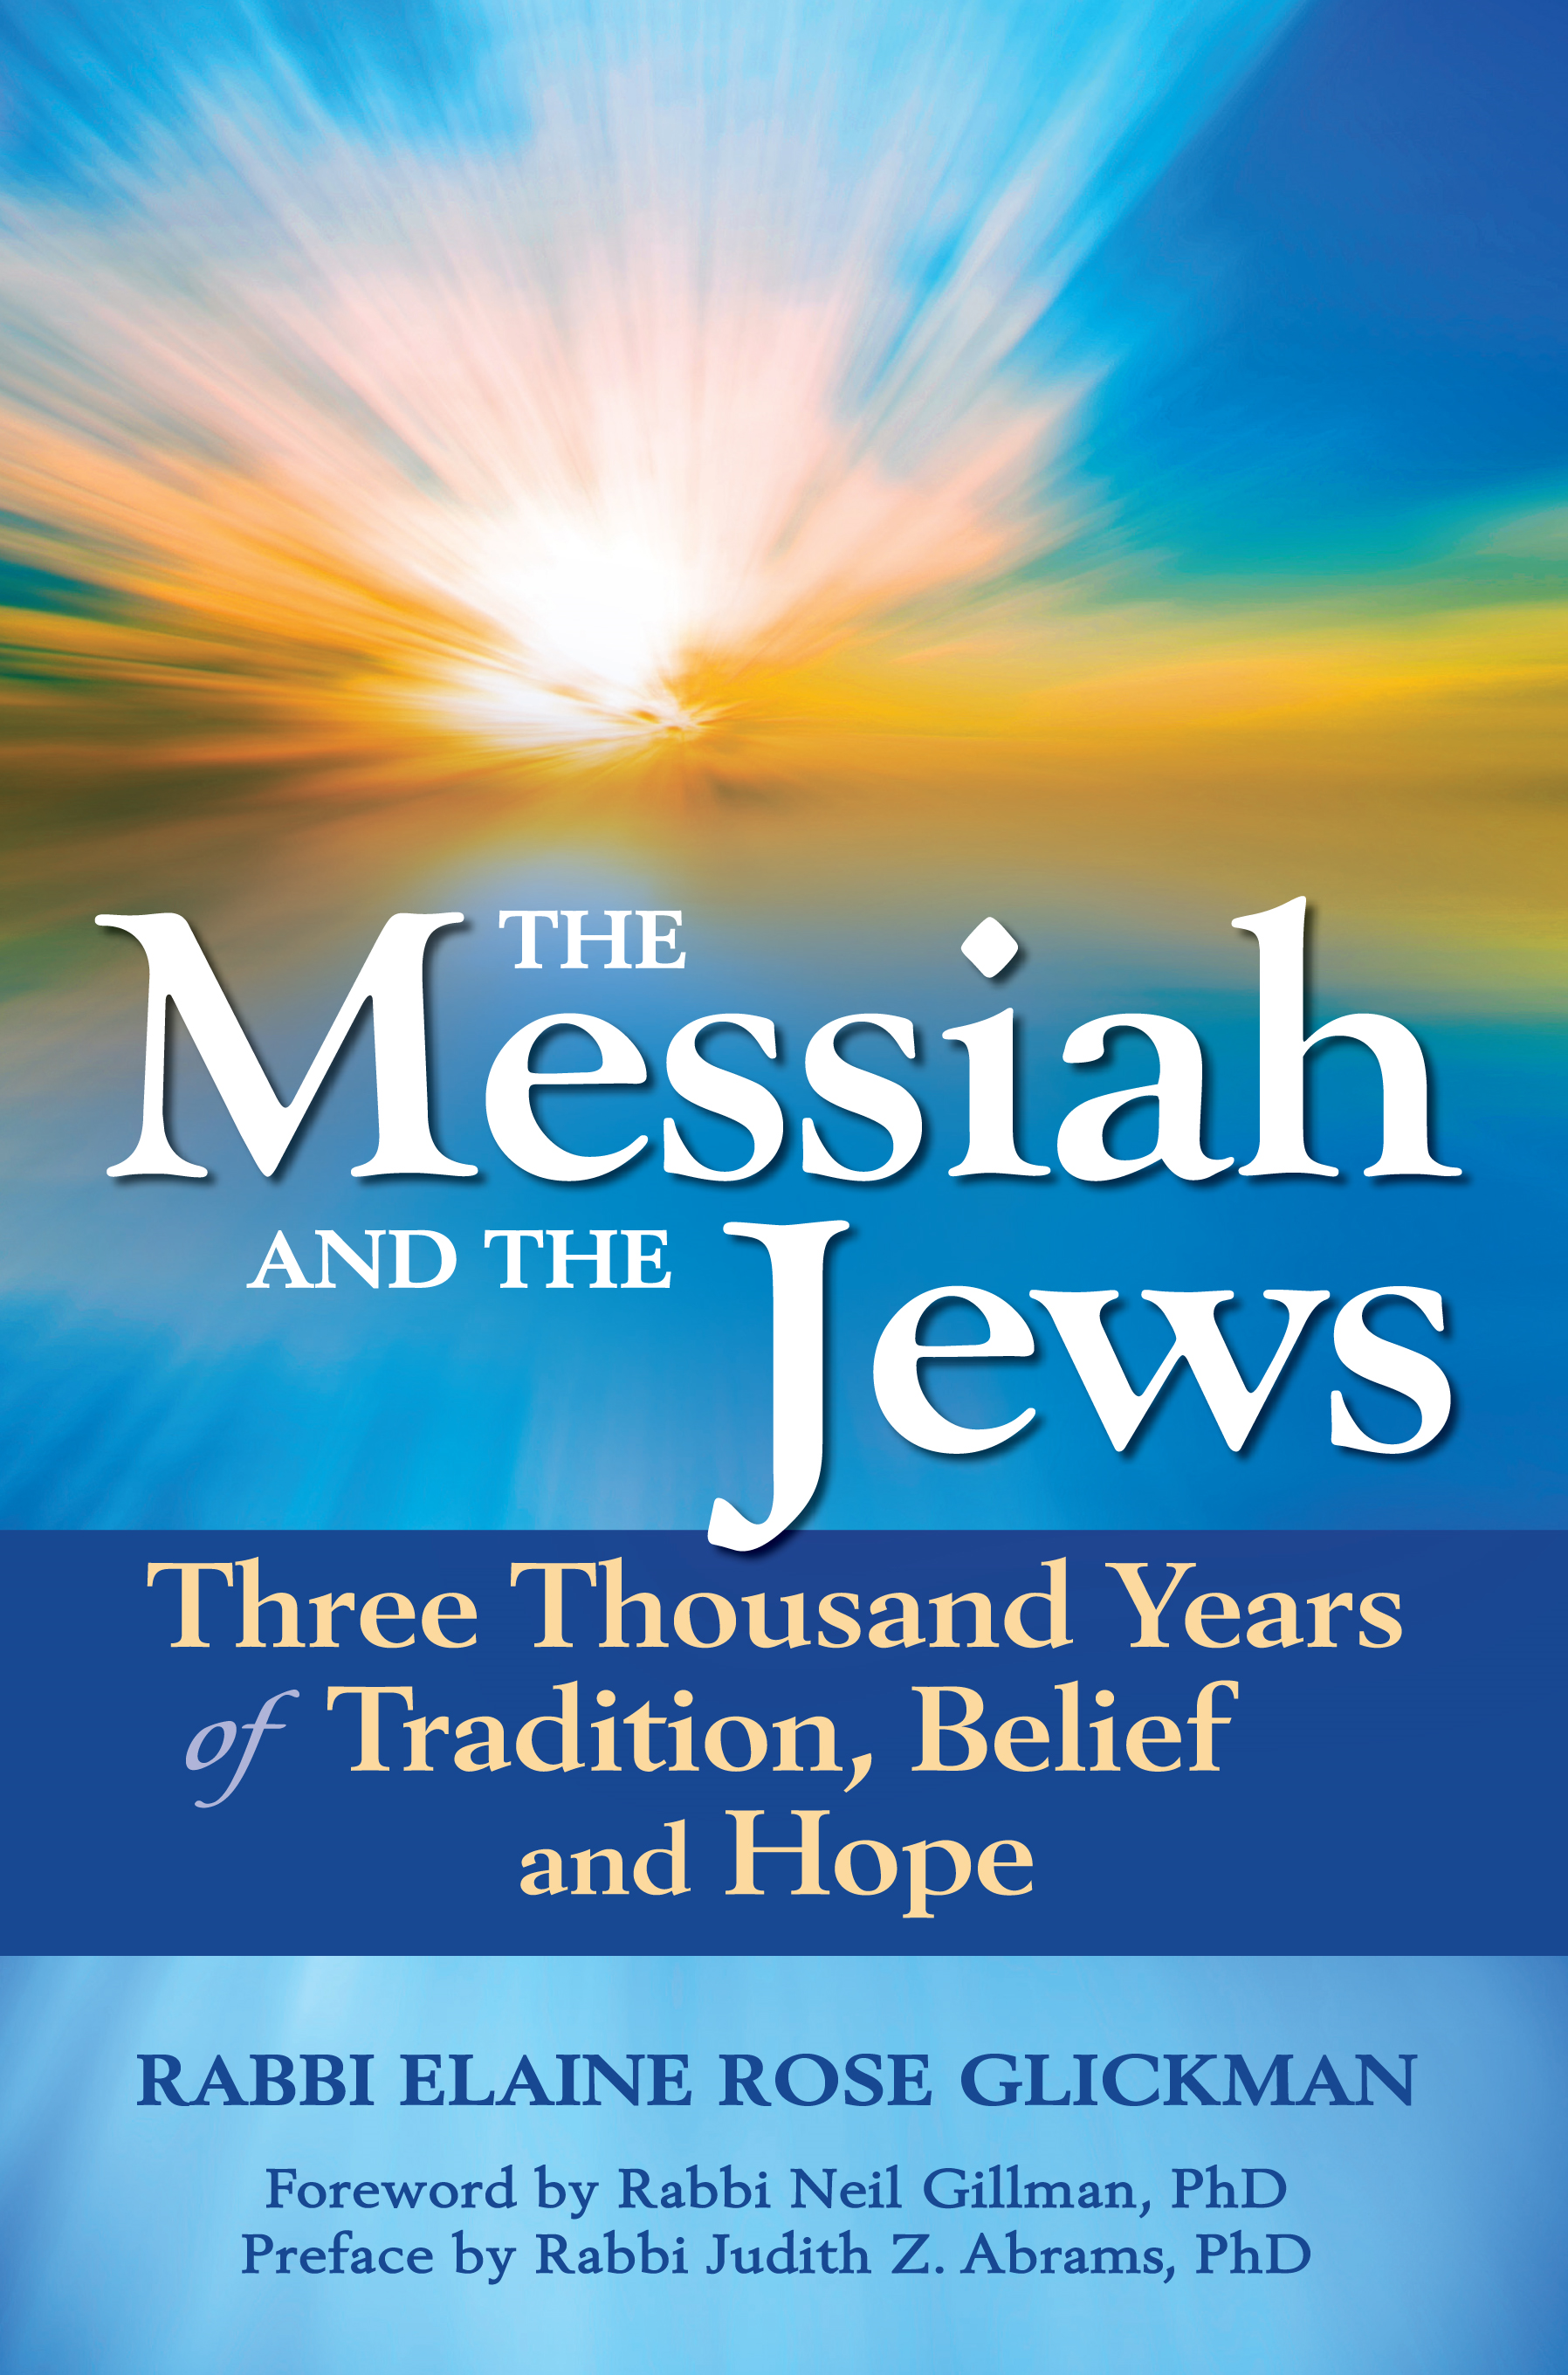 The Messiah and the Jews By: Rabbi Elaine Rose Glickman,Rabbi Judith Z. Abrams, PhD